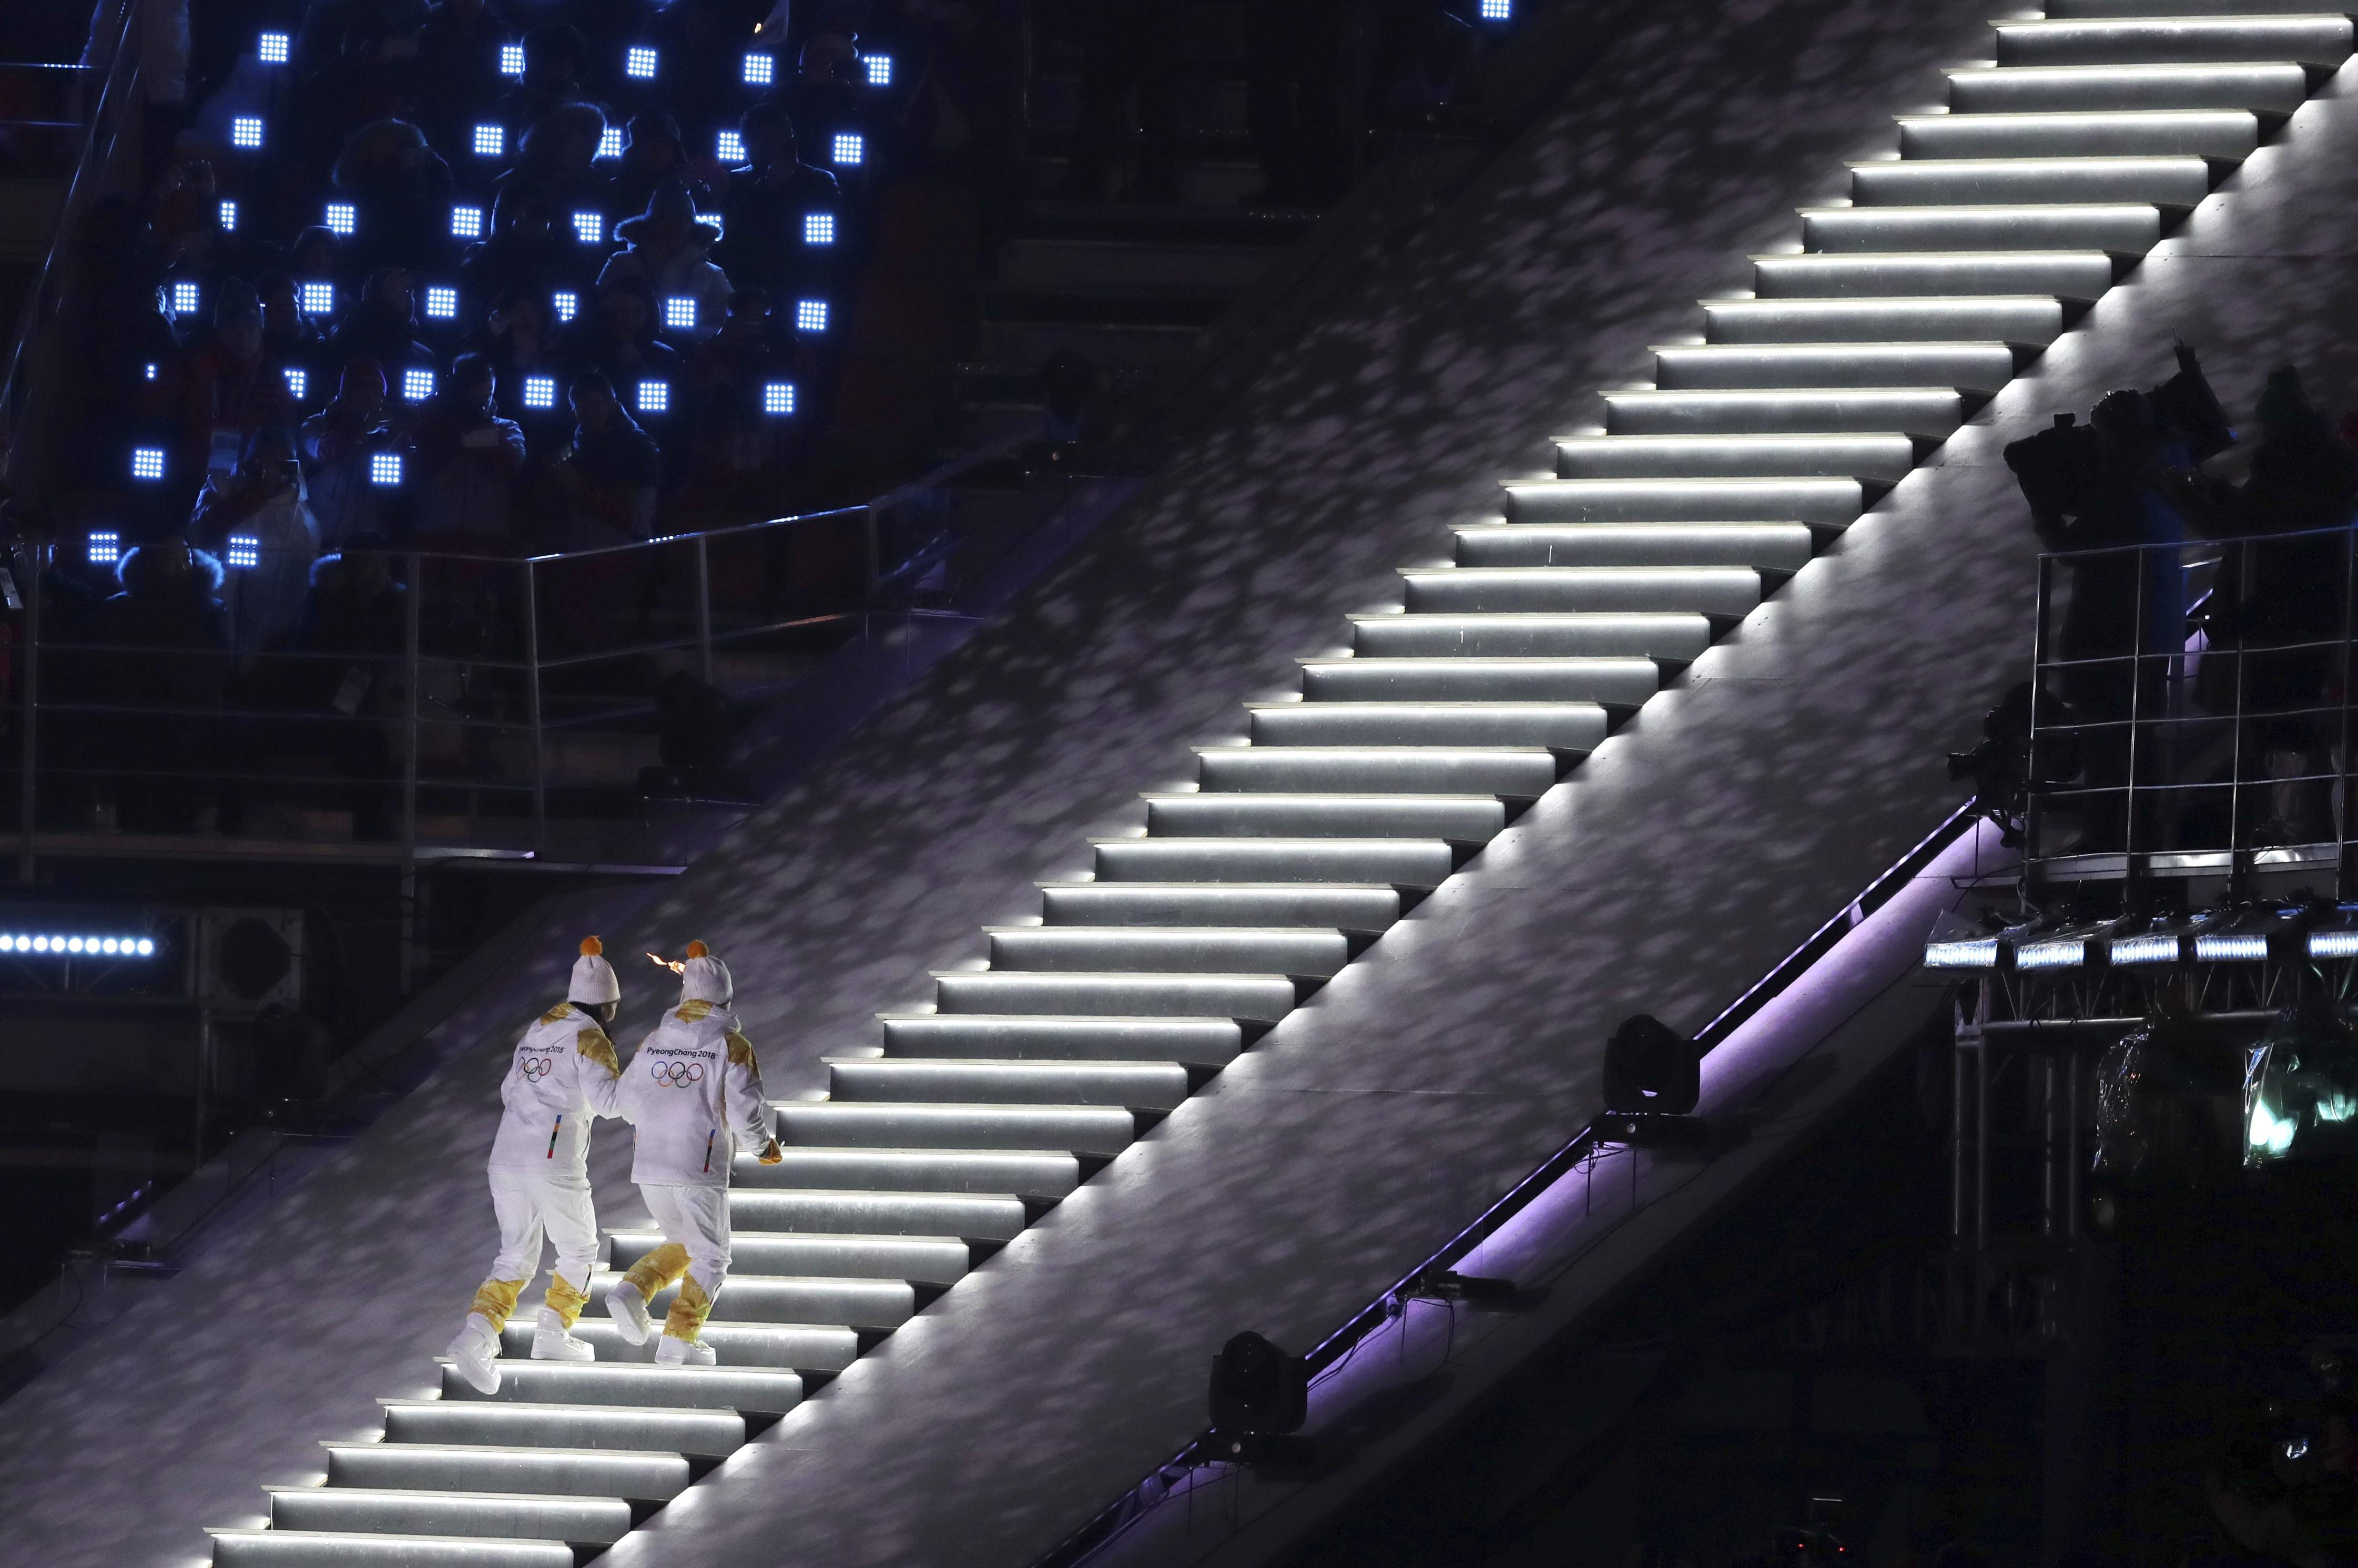 North Korea's Jong Su Hyon, left, and South Korea's Park Jong-ah carry the Olympic torch during the opening ceremony of the 2018 Winter Olympics in Pyeongchang, South Korea, Friday, Feb. 9, 2018. (AP Photo/Michael Sohn)